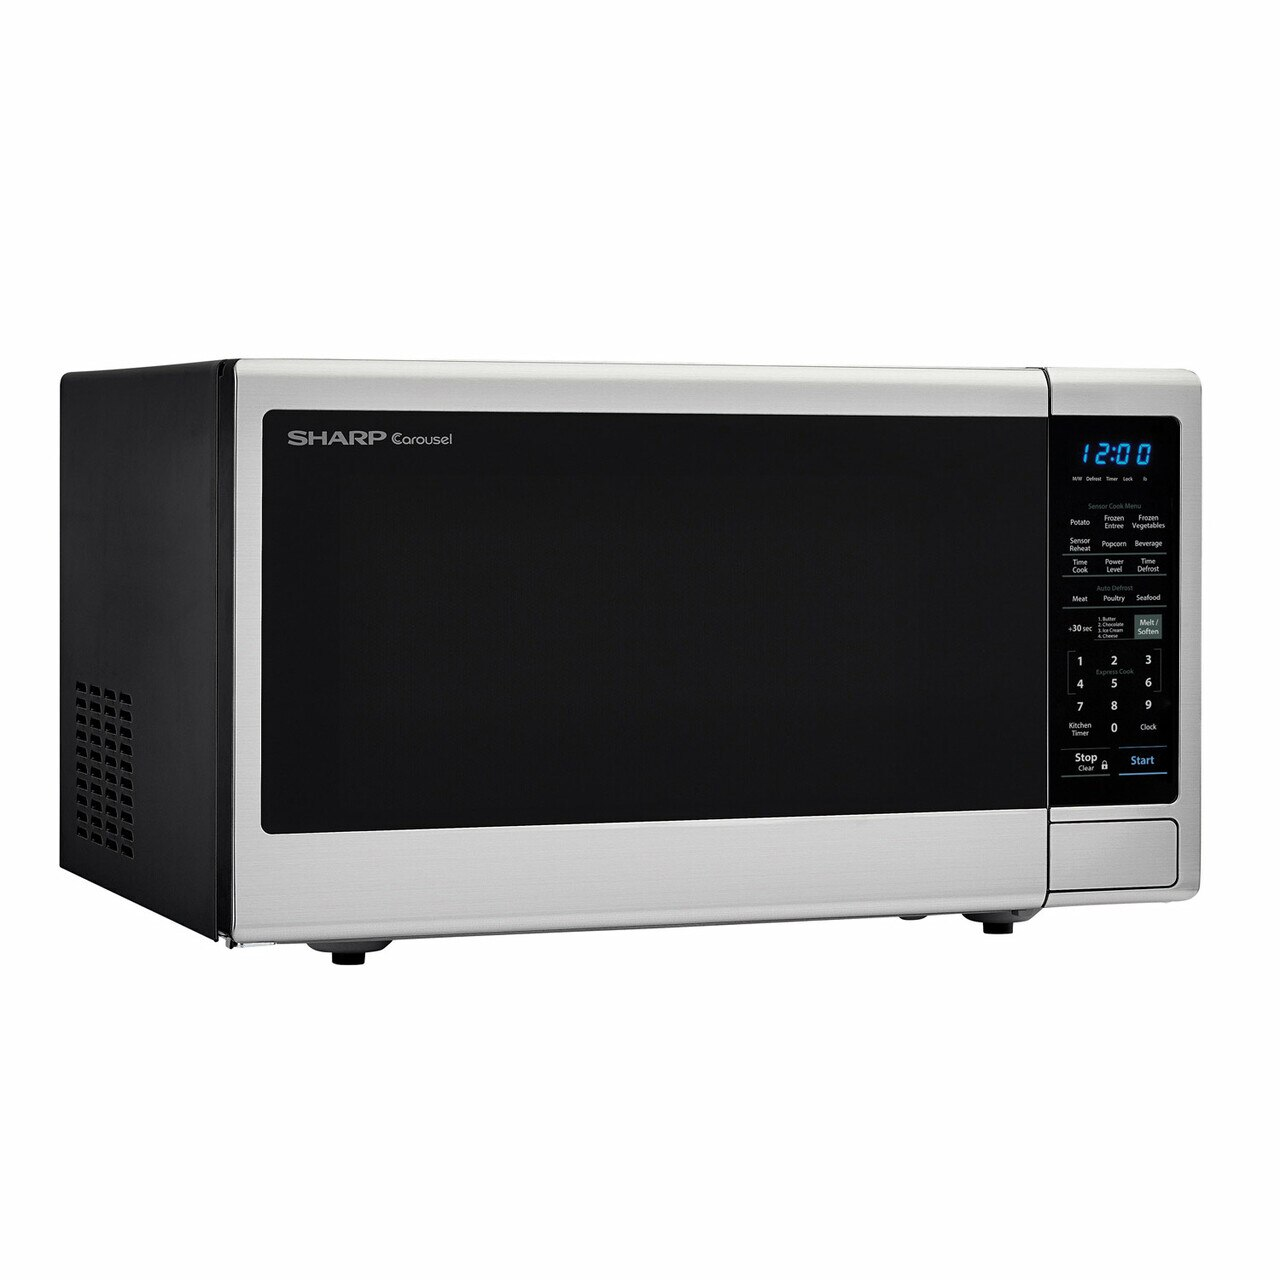 1.8 cu. ft. Sharp Stainless Steel Microwave with Black Mirror Door (SMC1843CM) – left angle view